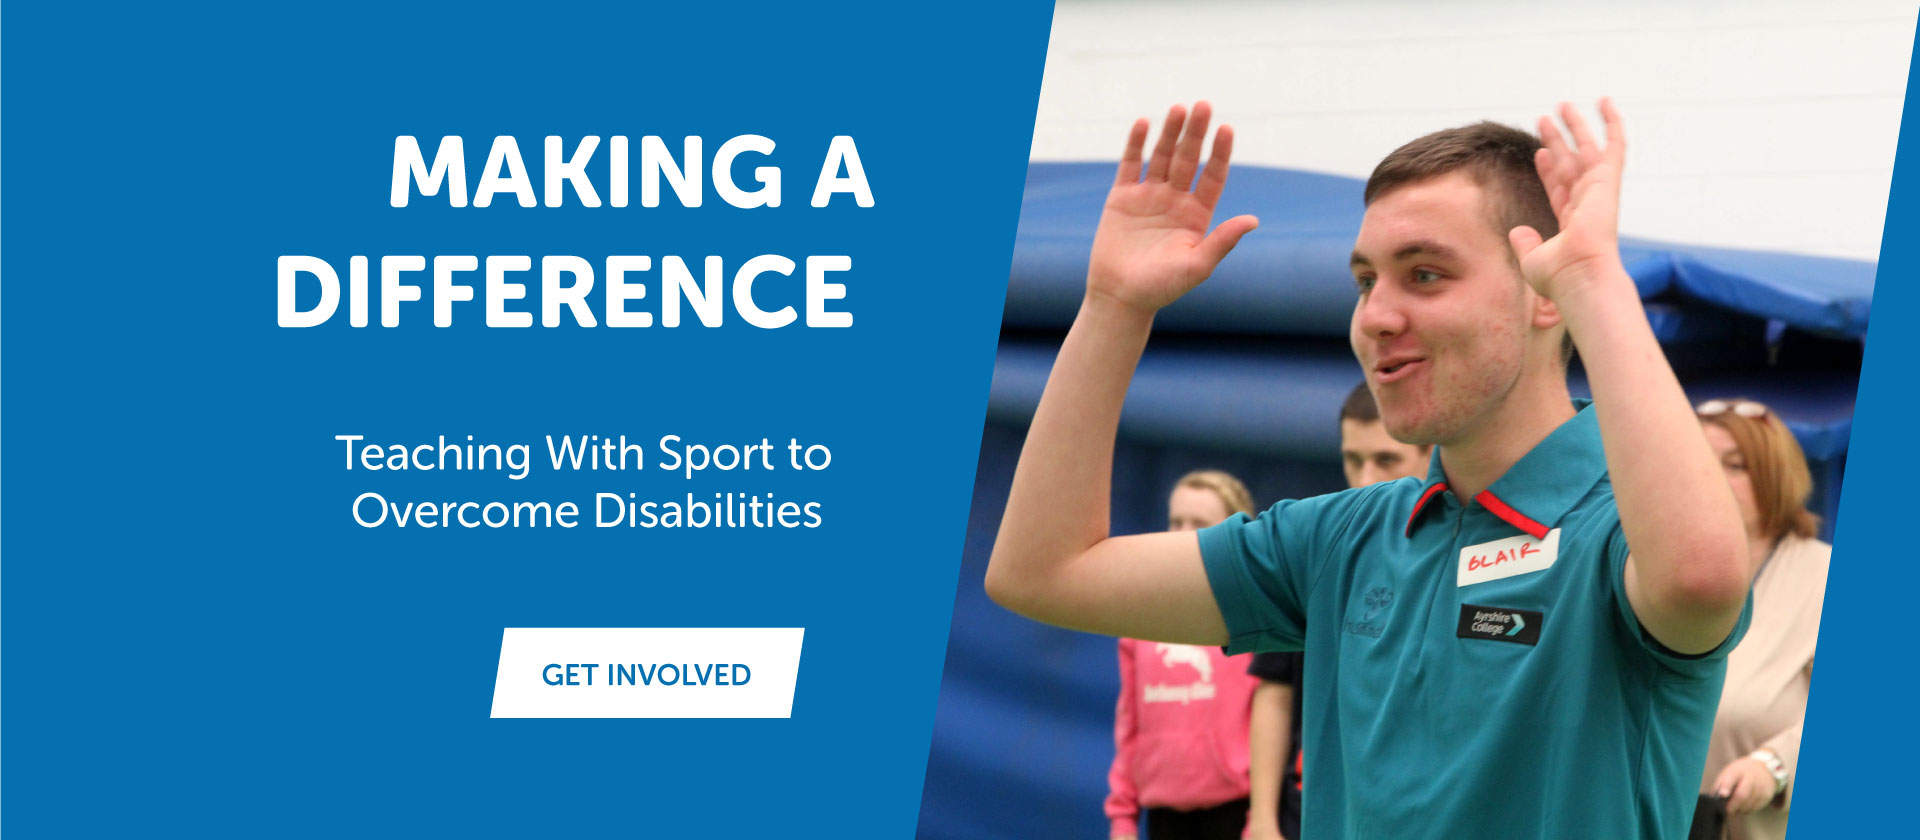 Teaching With Sport to Overcome Disabilities